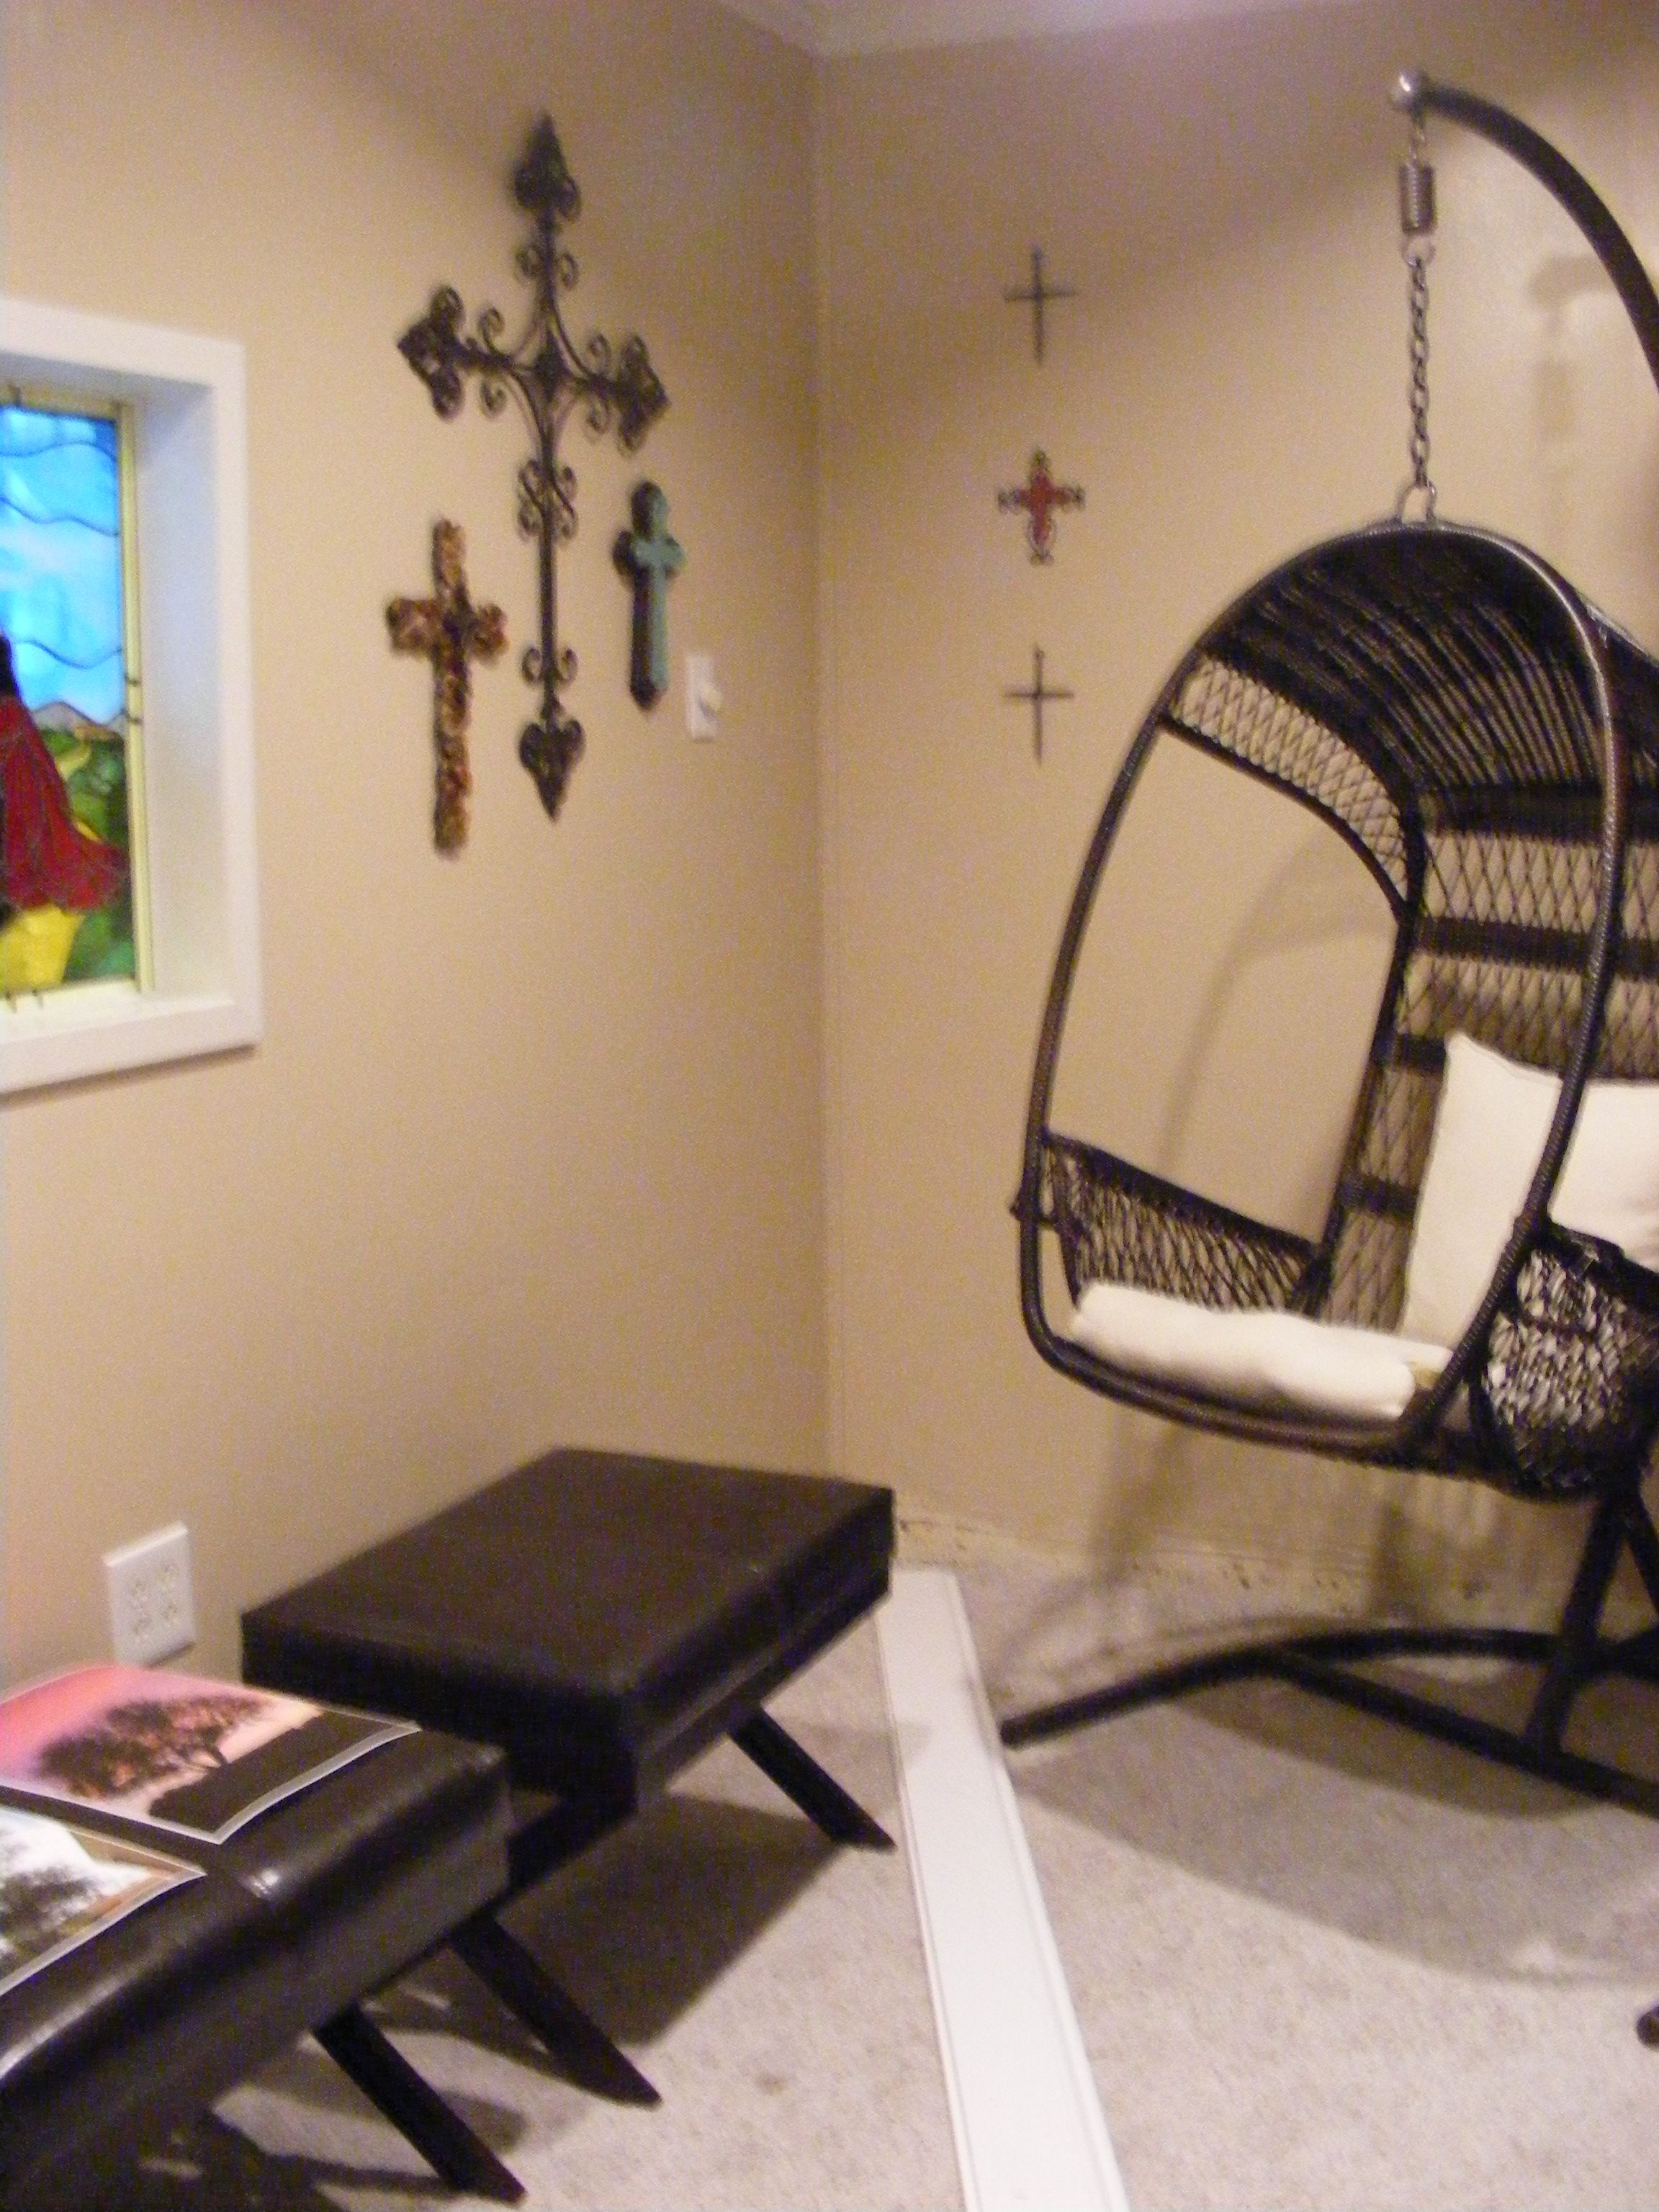 Prayer Room Design: One View Of The Final Product Of The Prayer Room. Opposite